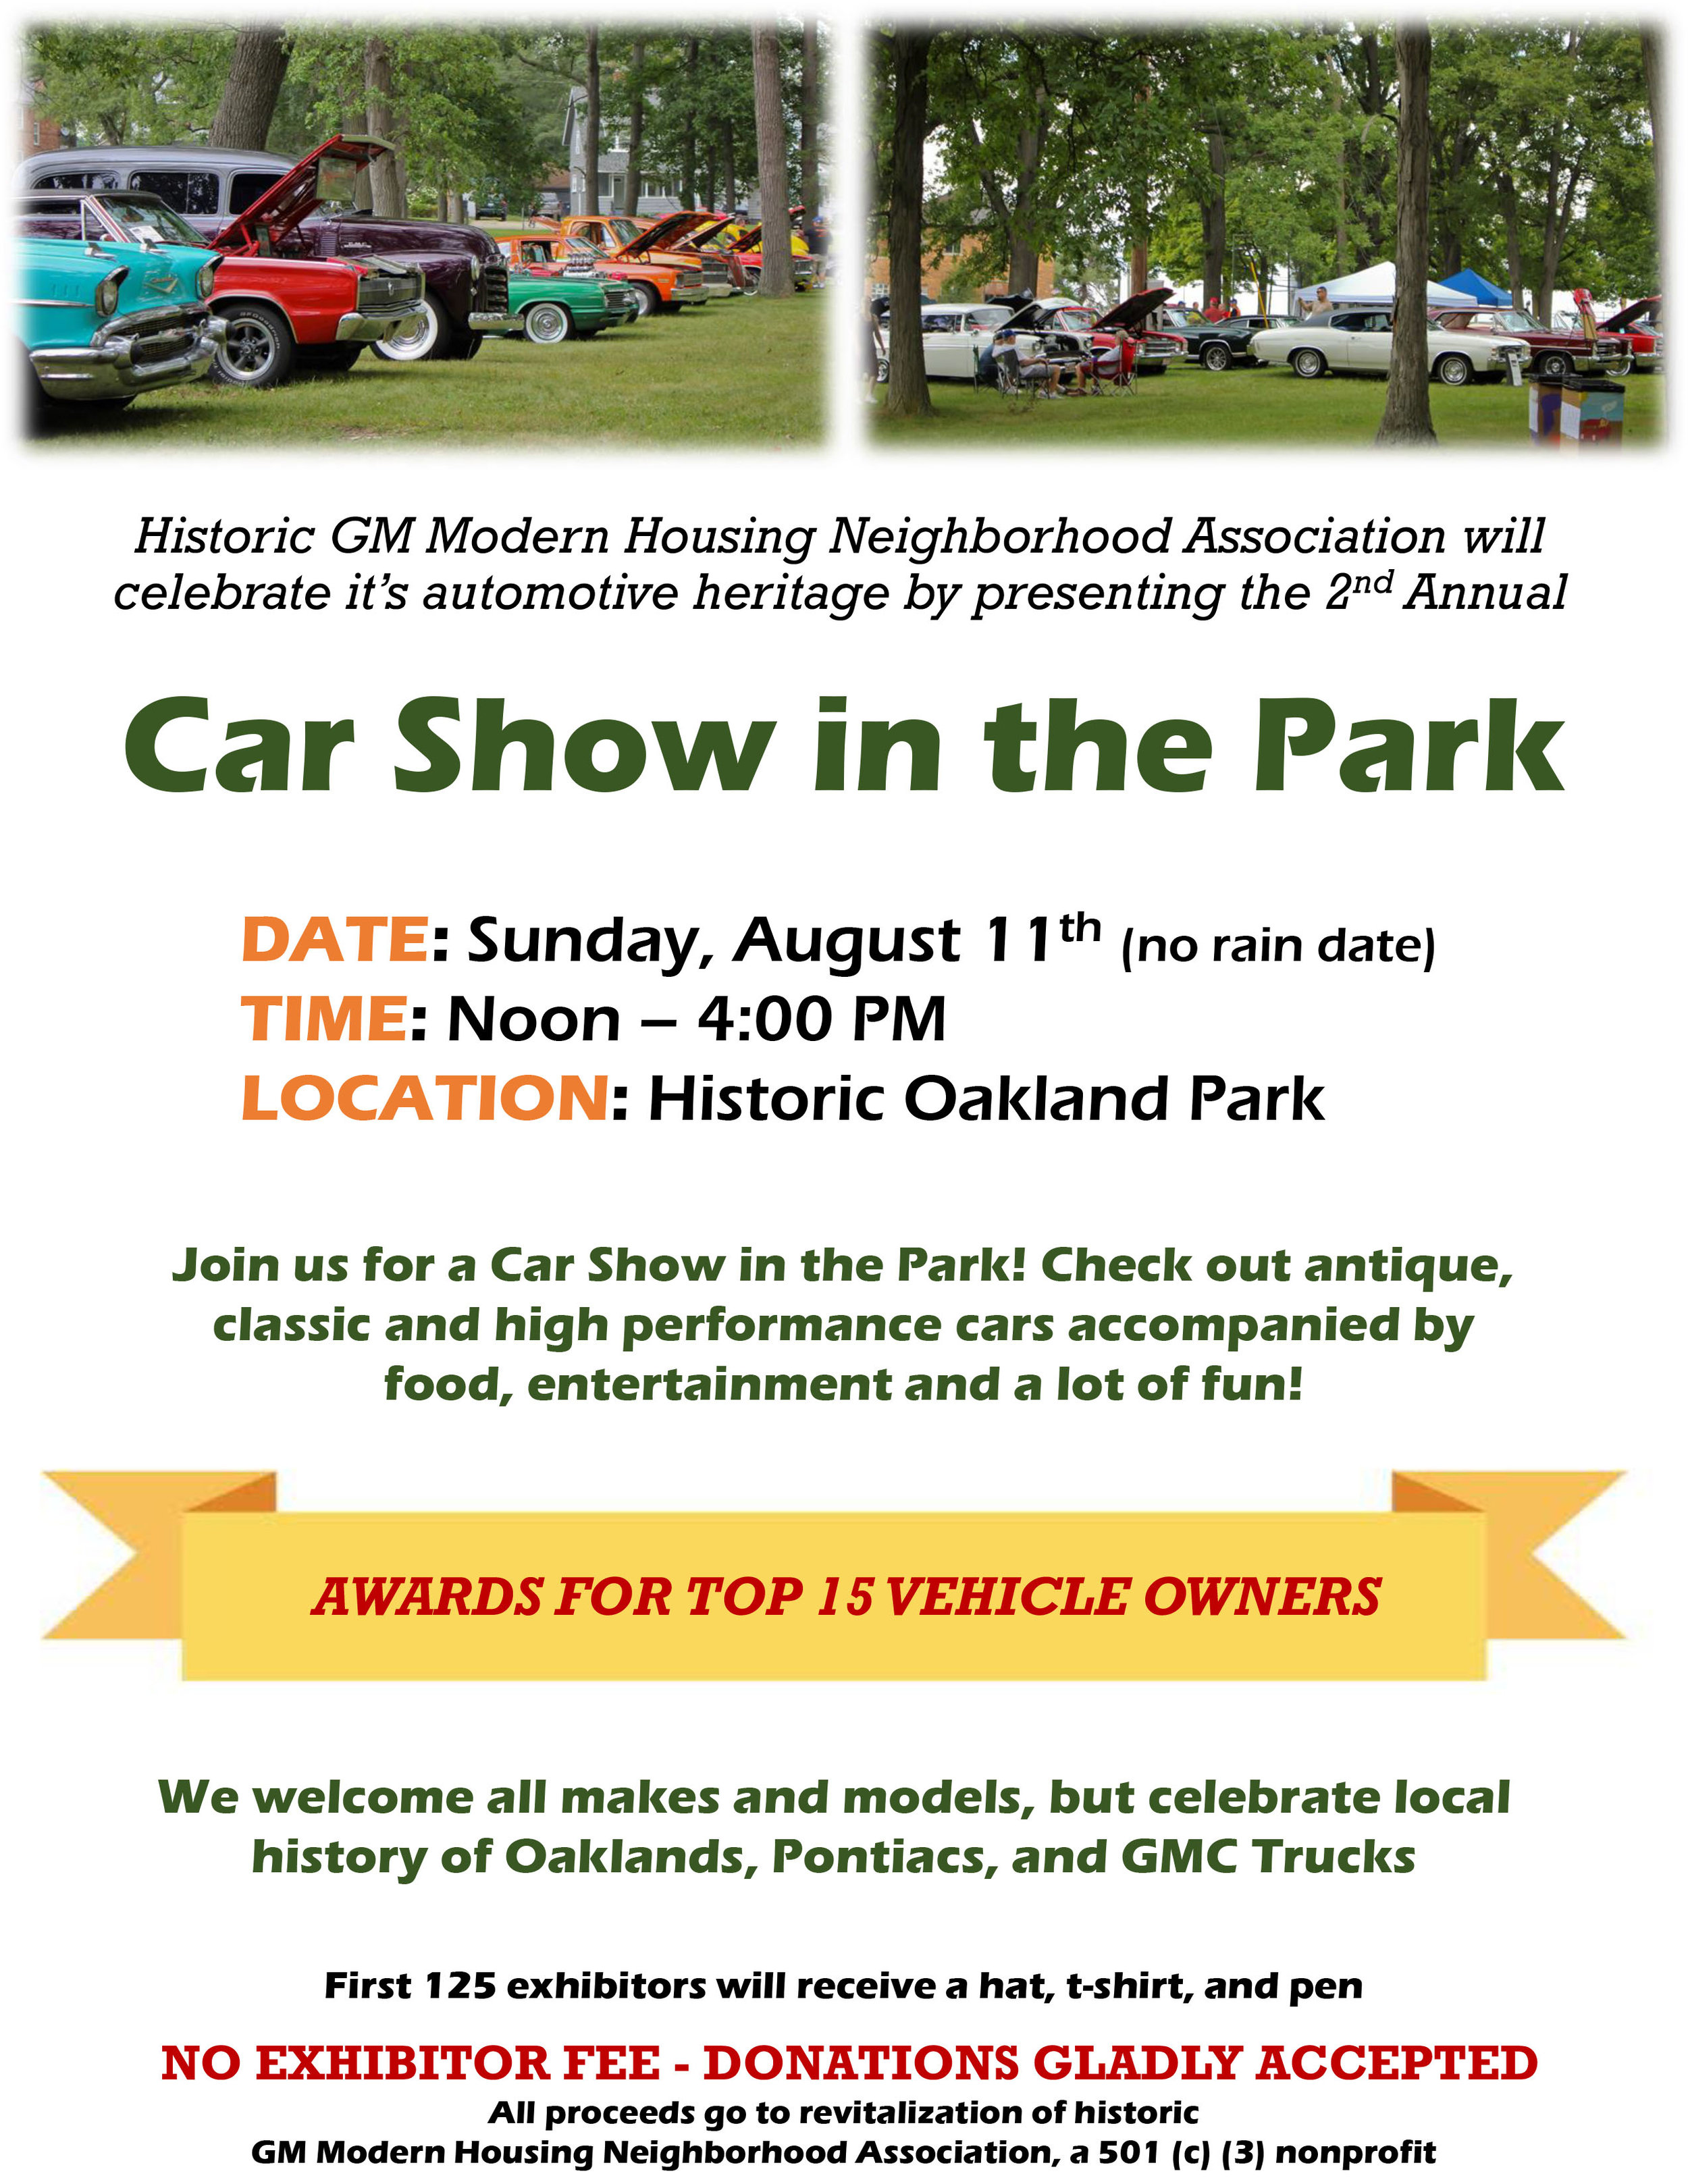 Car Show in the Park Flyer 2019-1.jpg